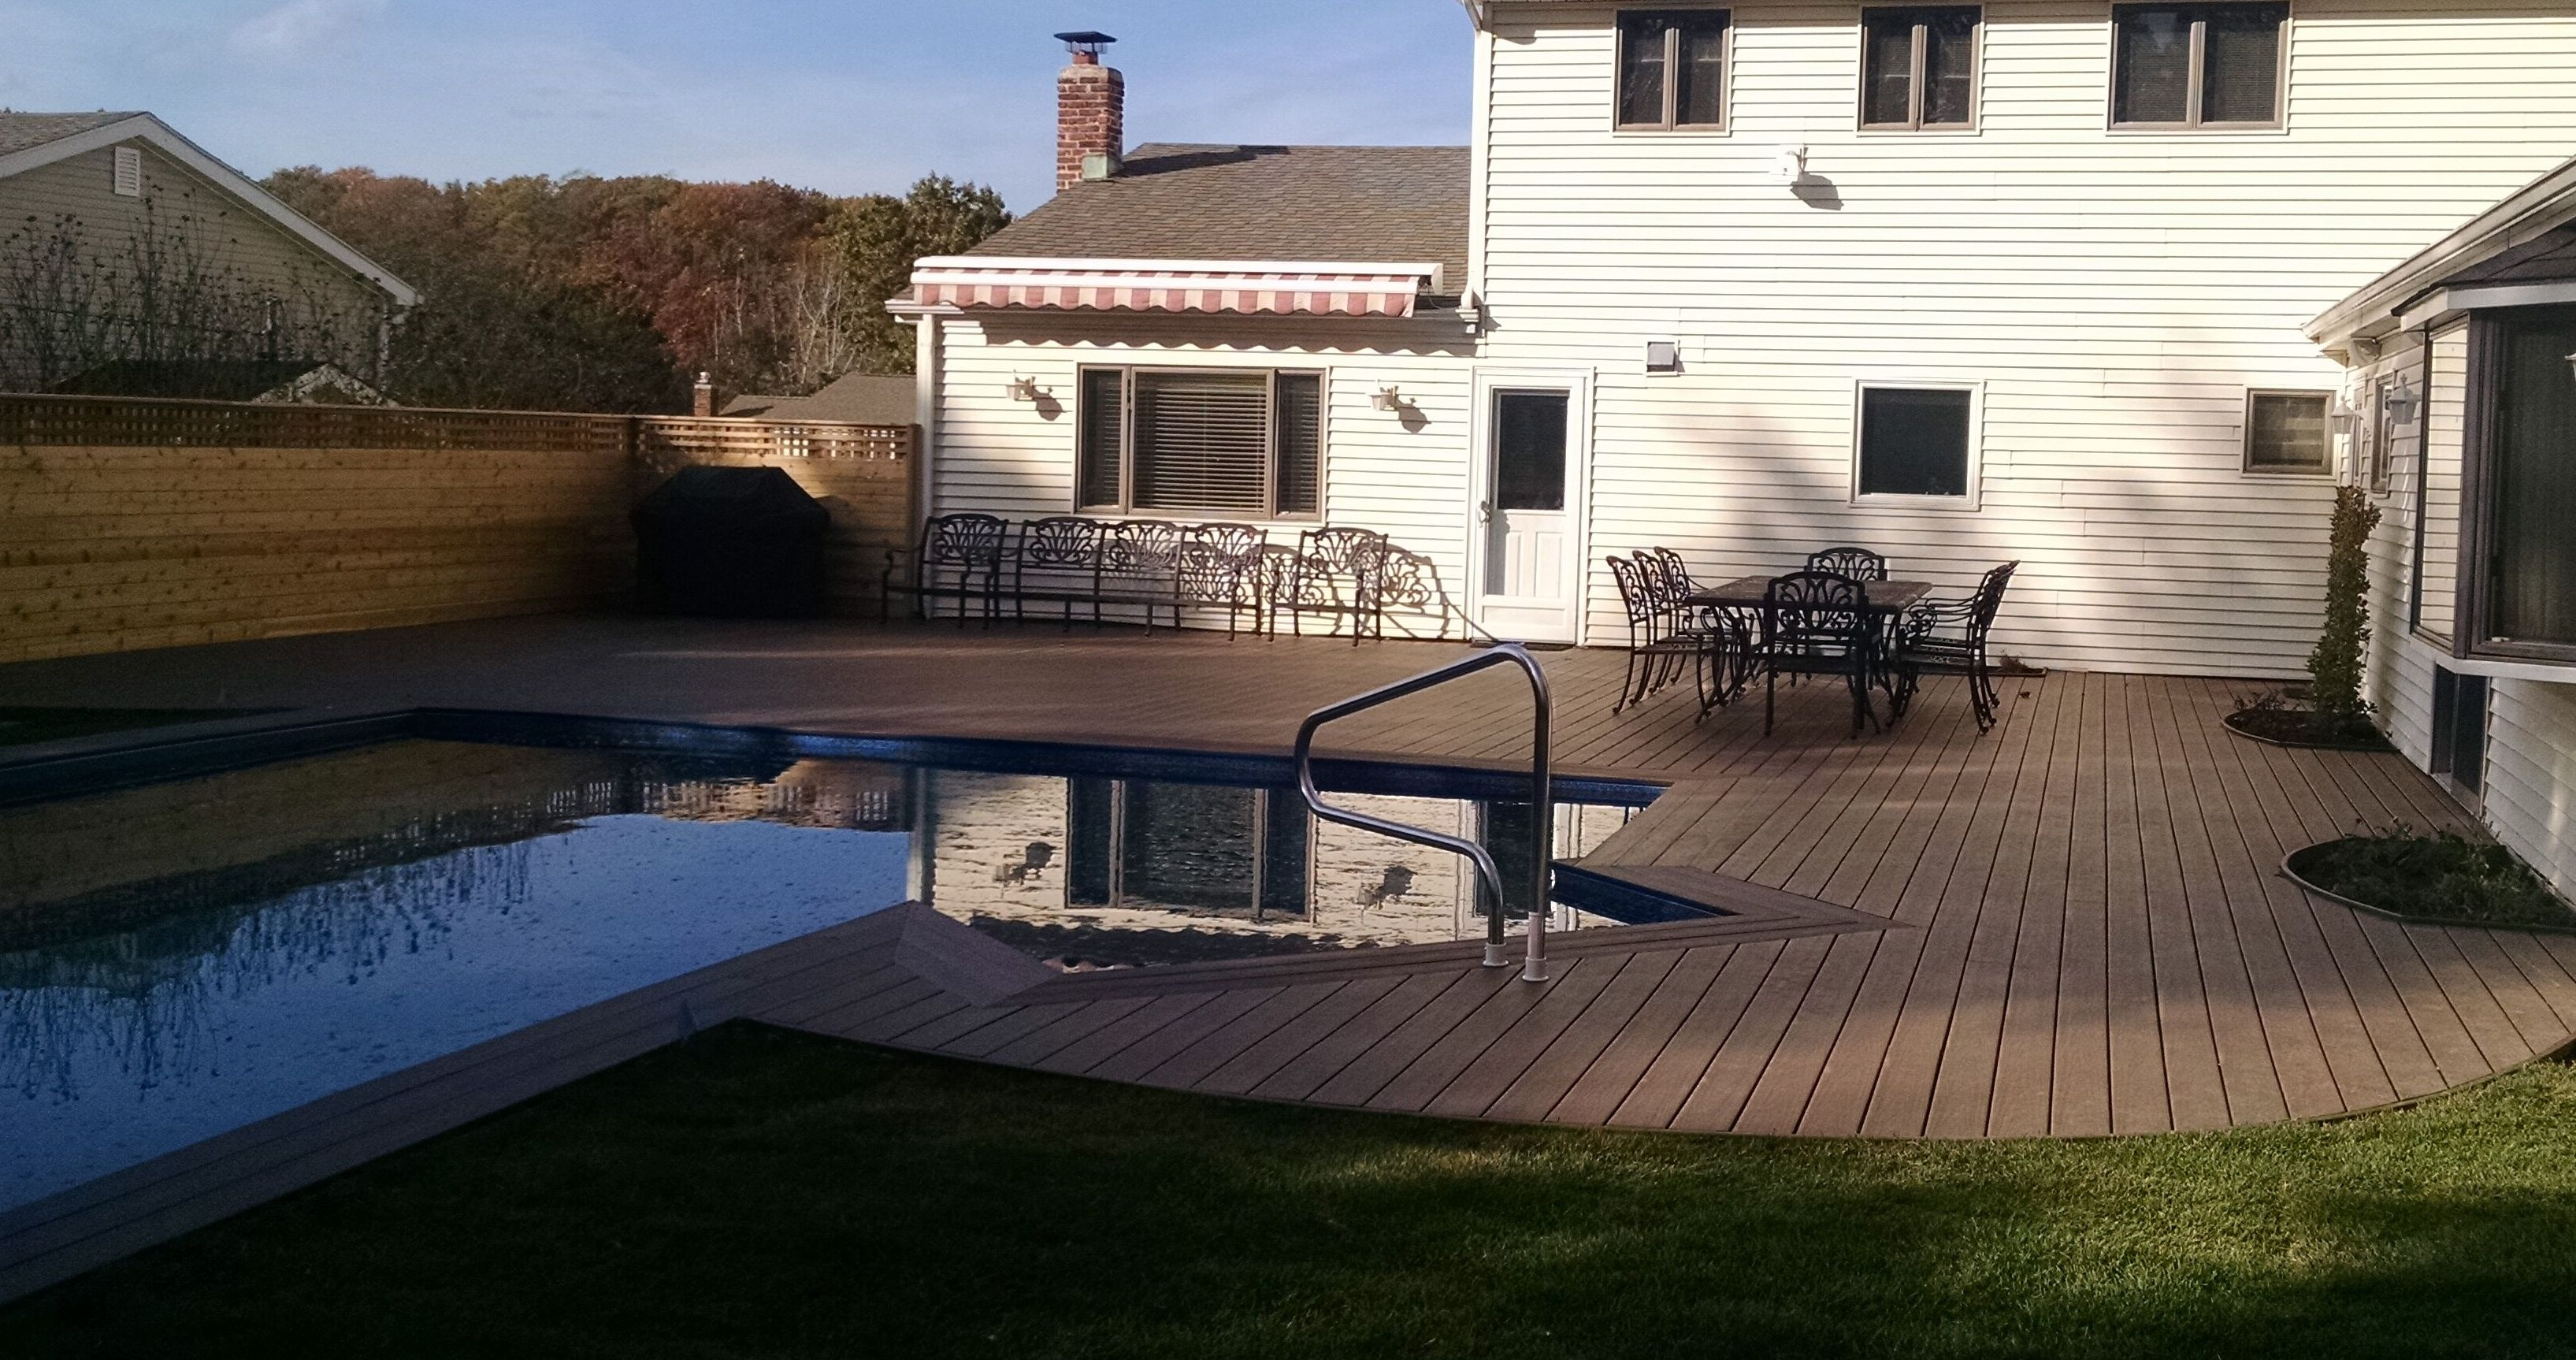 Fiberon Swimming Pool Deck Surround: